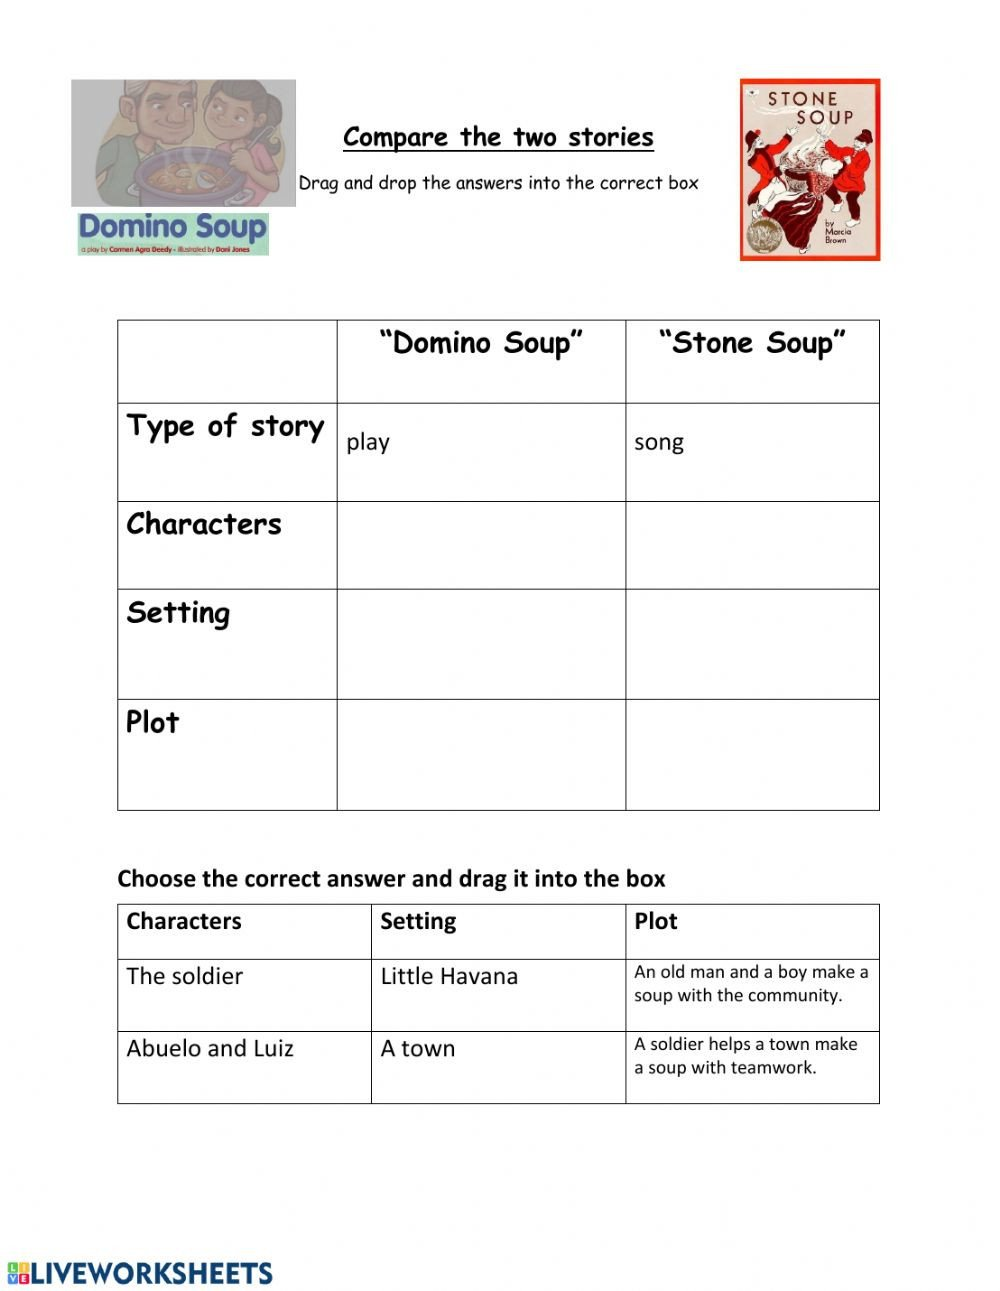 Character Setting Plot Worksheet Pare Stone soup and Domino soup Interactive Worksheet